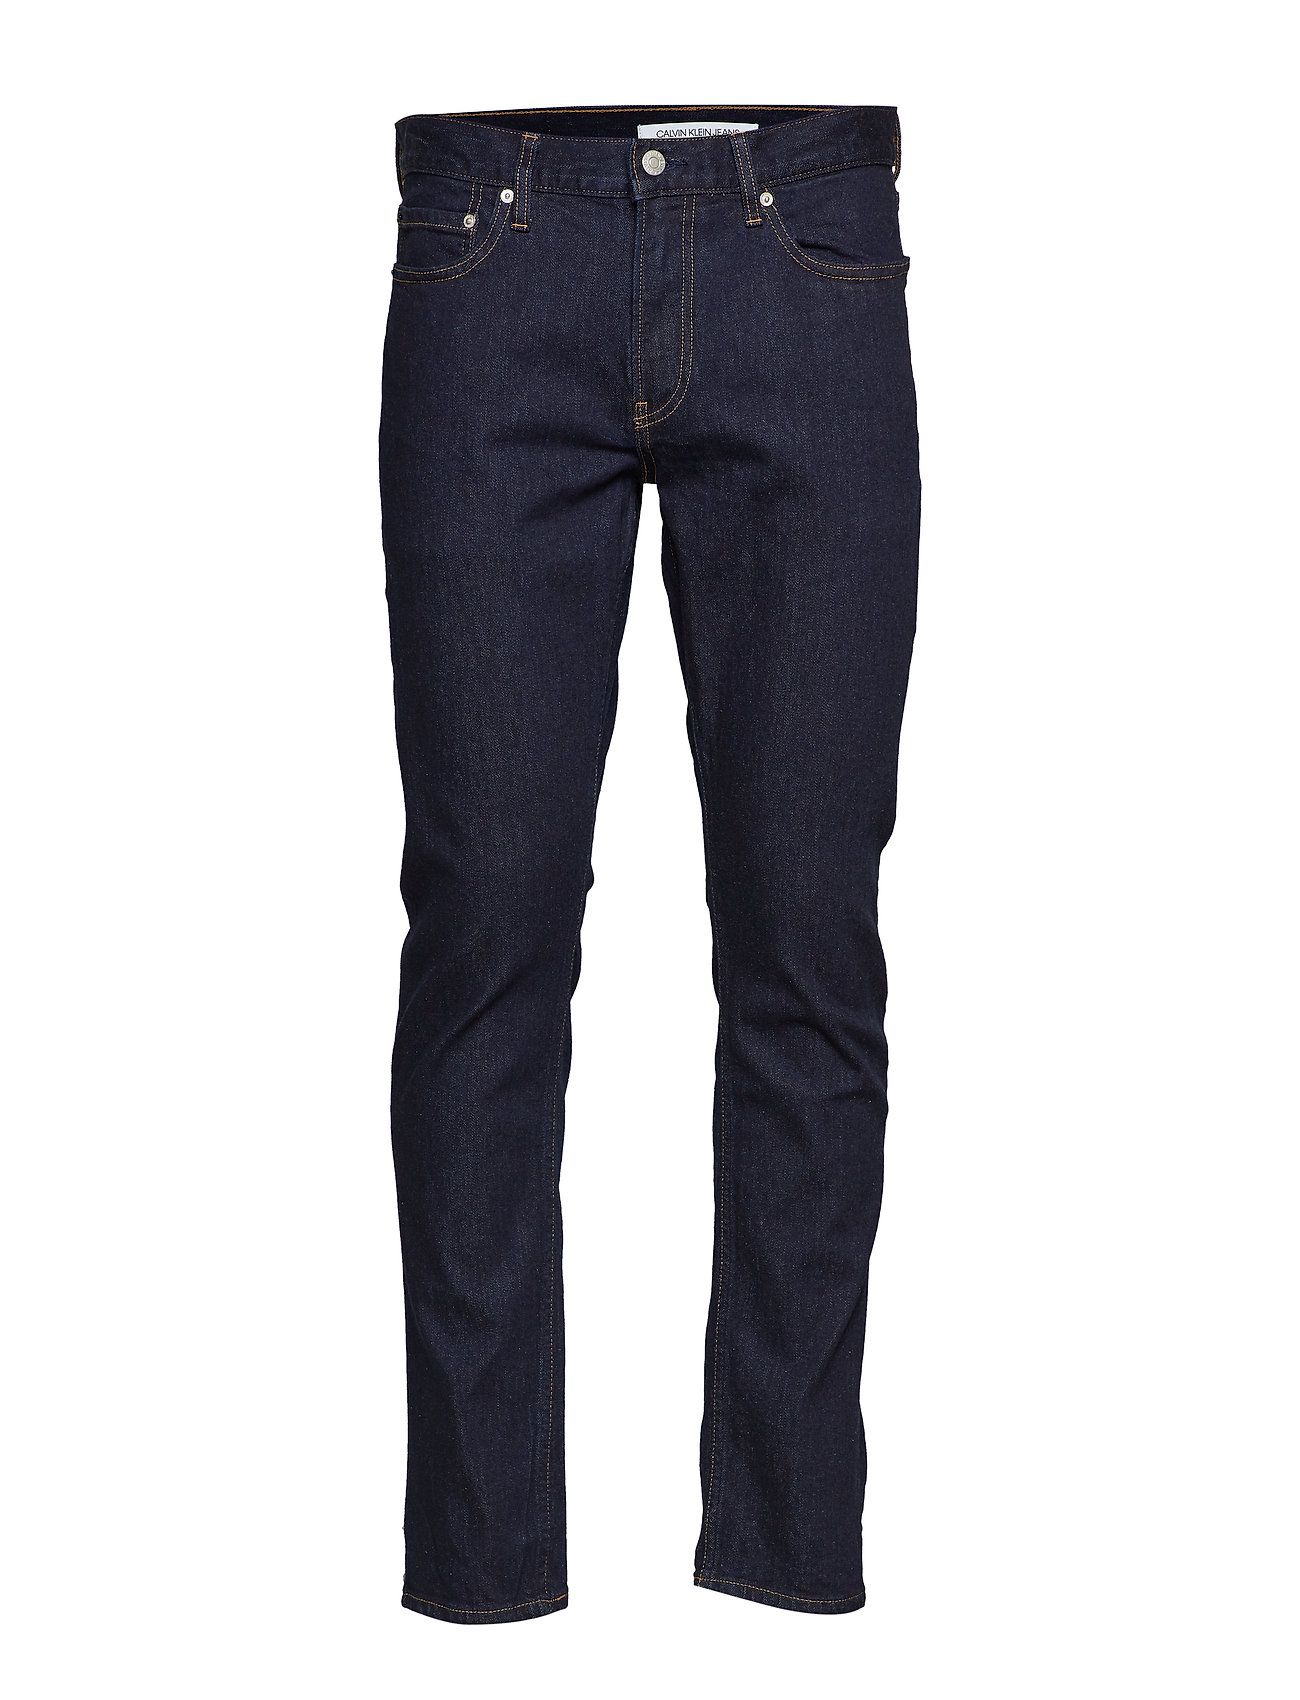 Calvin Klein Jeans CKJ 026 SLIM - RINSE WITH RED EMBROIDERY